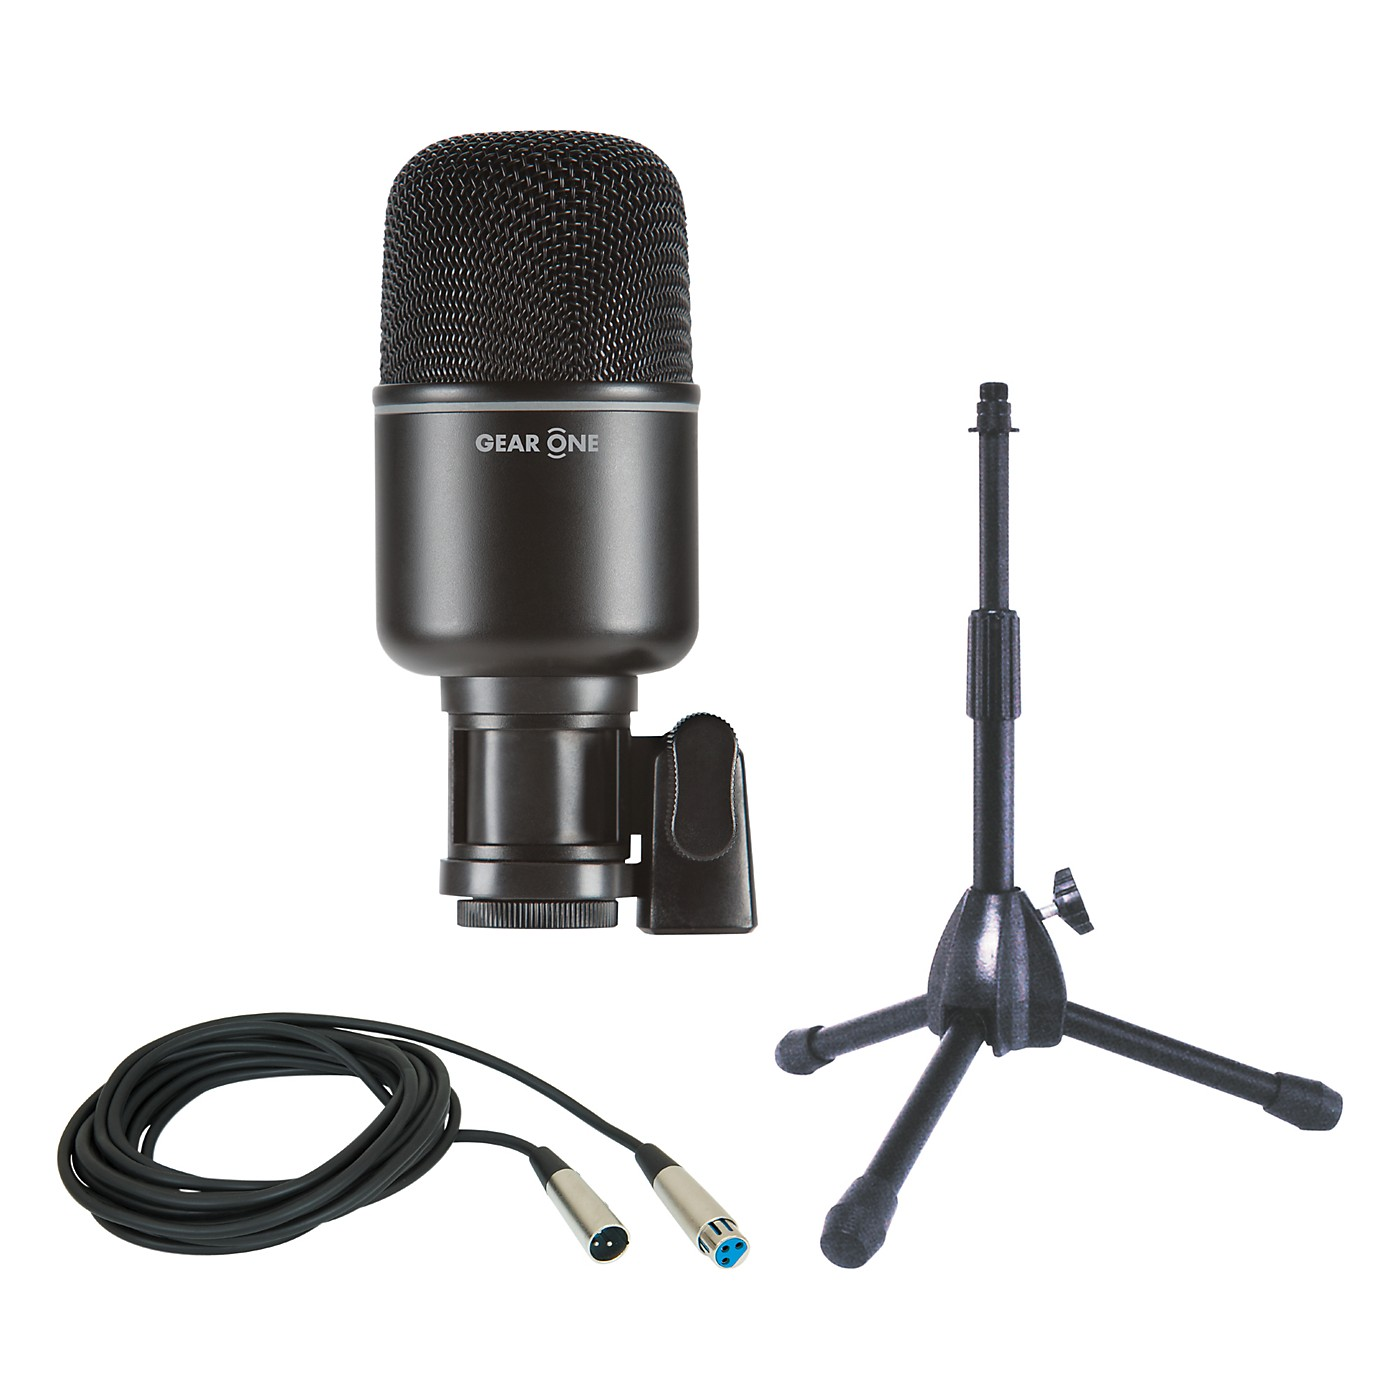 Gear One MK1000 Kick Drum Mic Package with Stand and Cable thumbnail